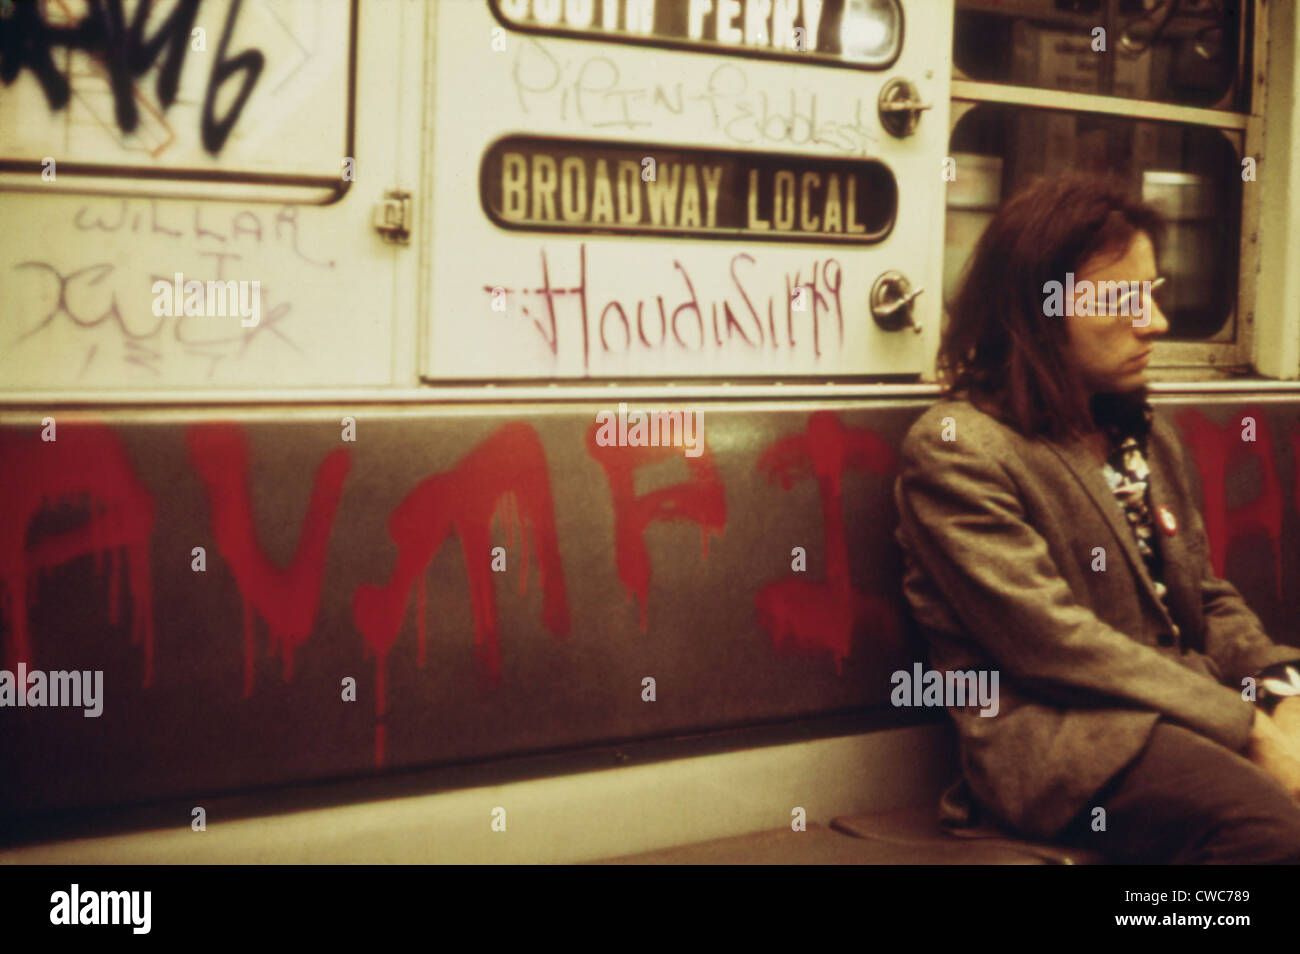 new york city subway car interior covered with spray painted stock photo 50056281 alamy. Black Bedroom Furniture Sets. Home Design Ideas